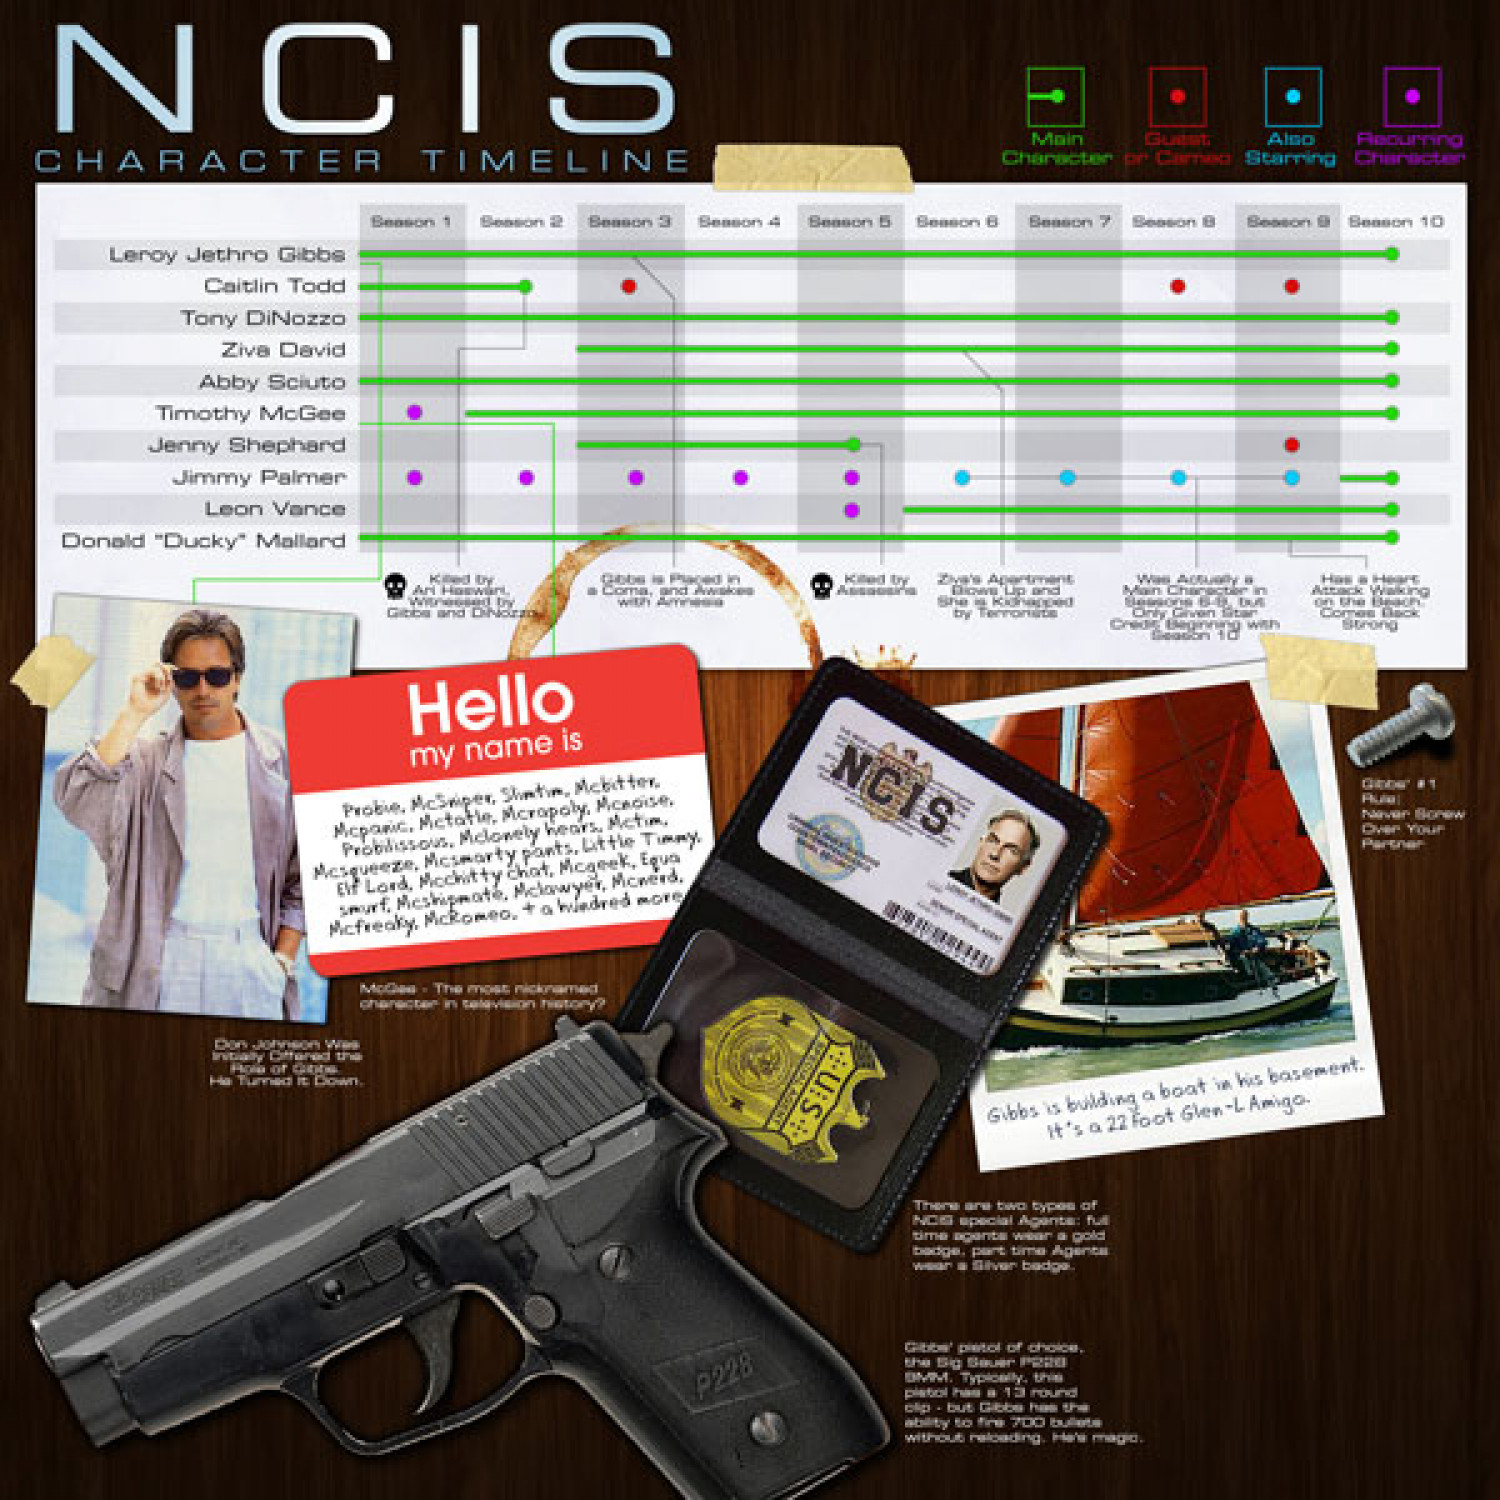 NCIS Timeline For Cast and Characters Infographic